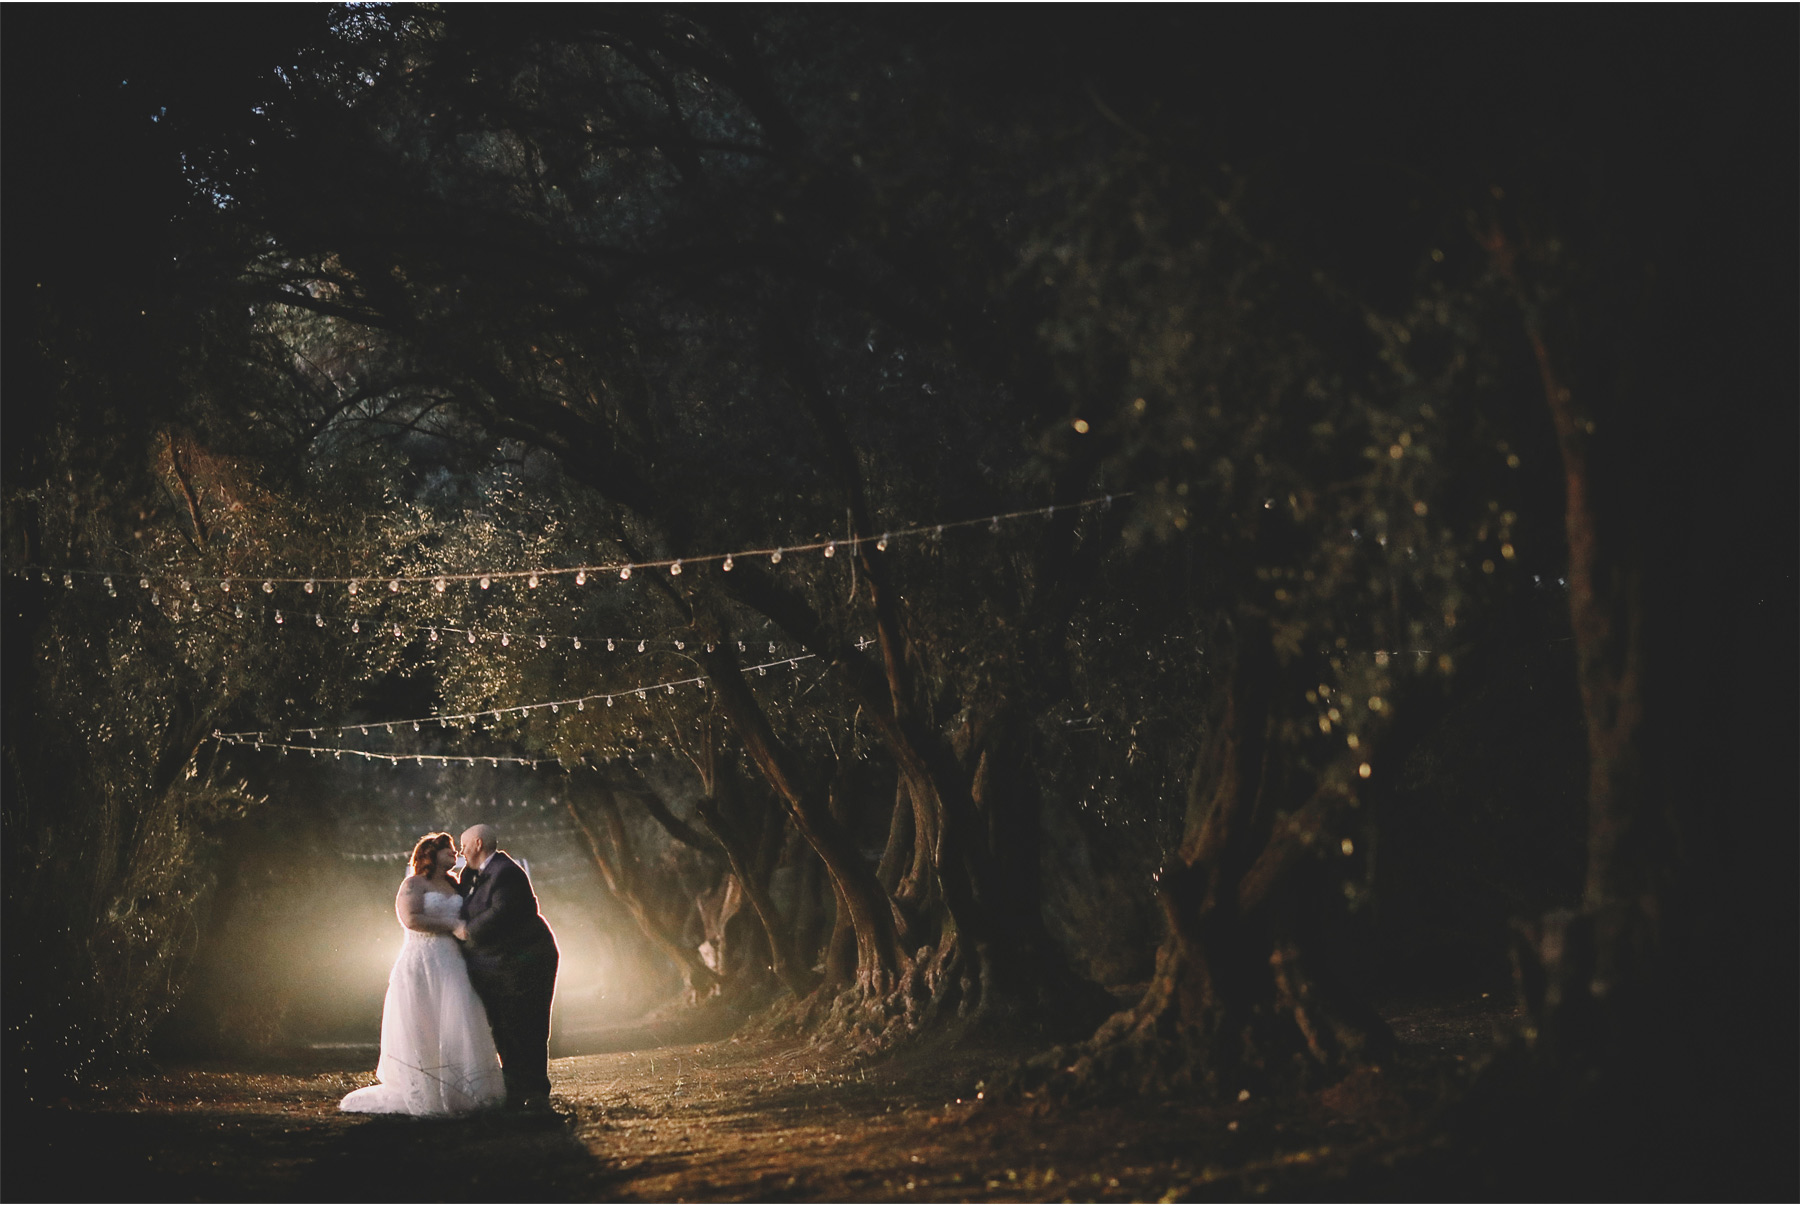 19-Los-Angeles-California-Wedding-Photographer-by-Vick-Photography-Highland-Springs-Ranch-LGBT-Night-Photography-Trees-Rebecca-and-Terri.jpg